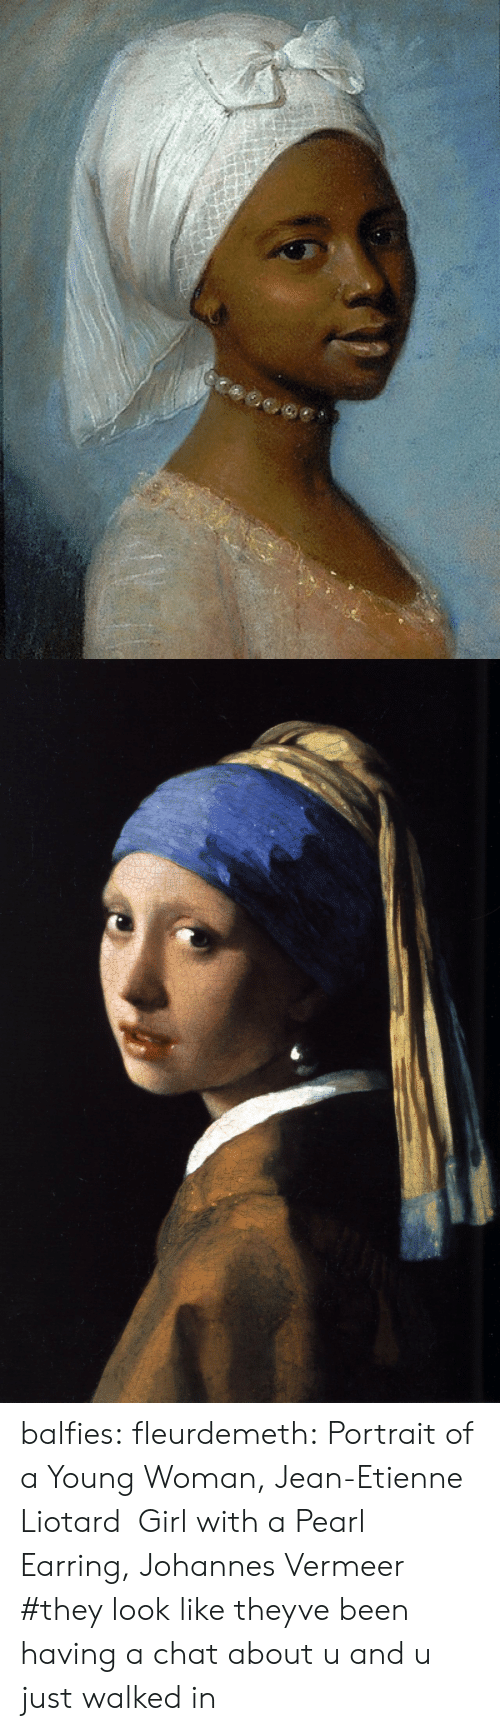 Tumblr, Blog, and Chat: balfies:  fleurdemeth:  Portrait of a Young Woman, Jean-Etienne Liotard  Girl with a Pearl Earring, Johannes Vermeer    #they look like theyve been having a chat about u and u just walked in